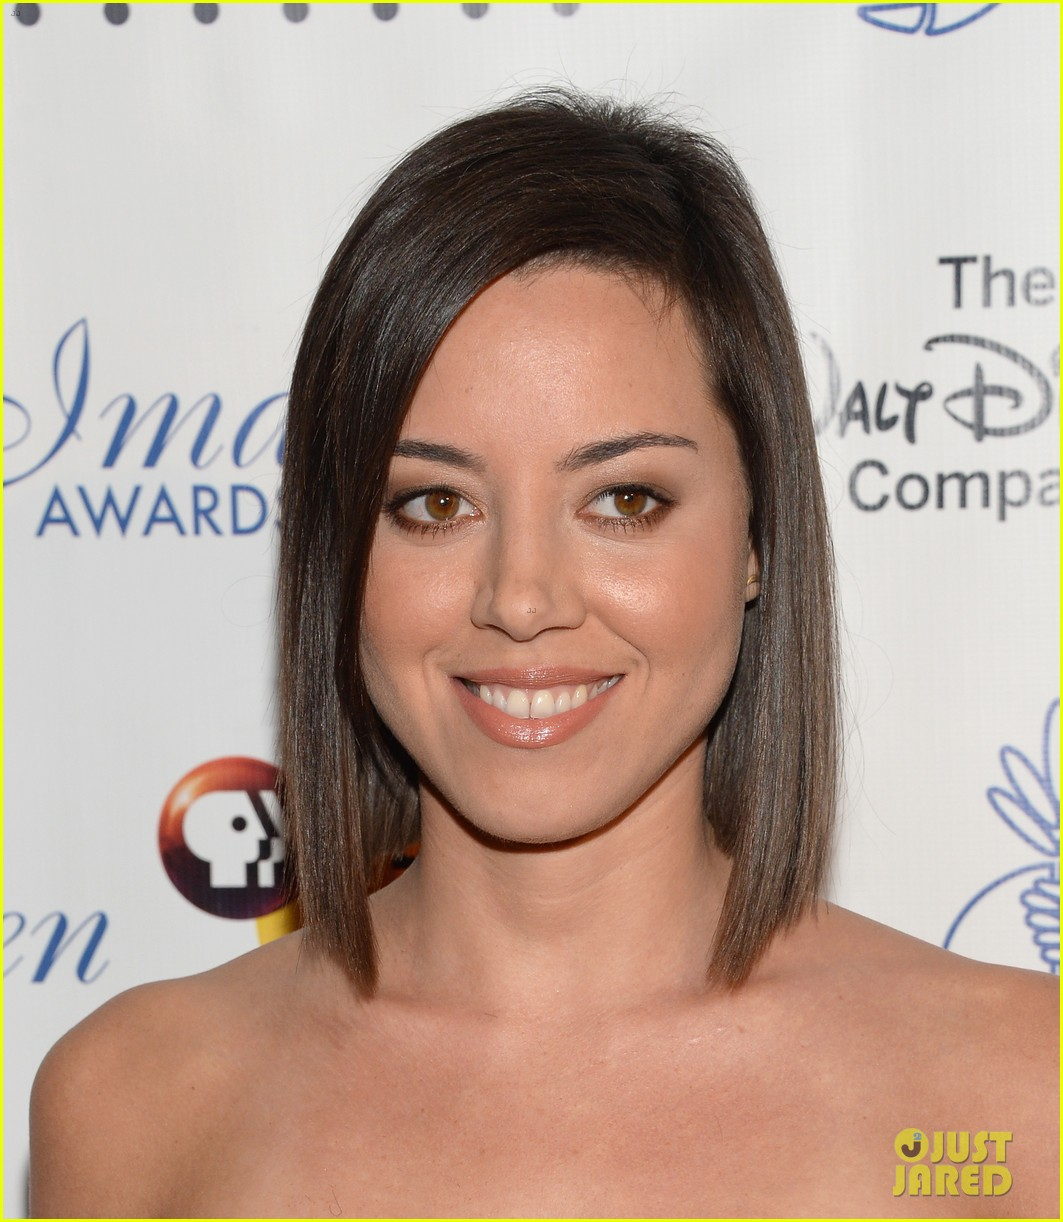 Aubrey plaza dating 2020